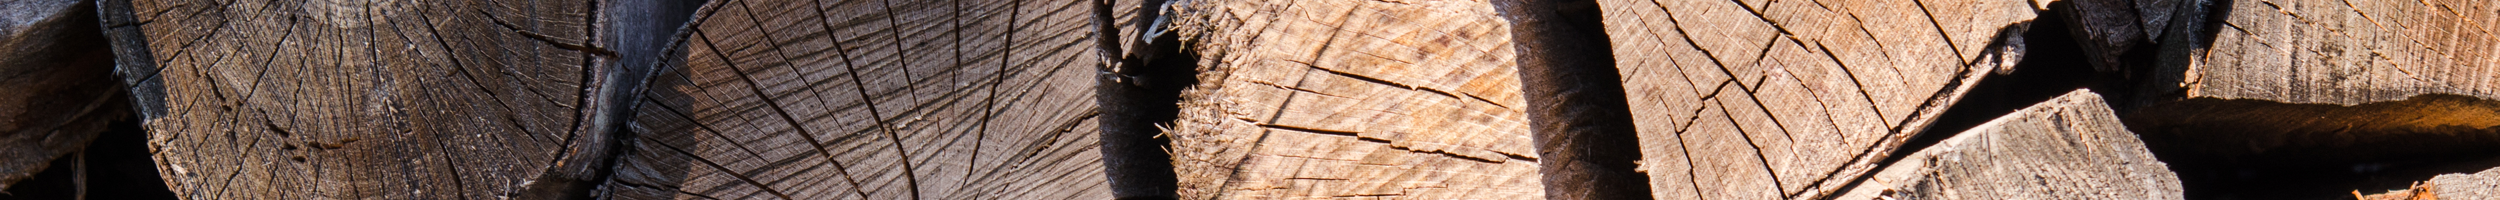 ALL FIRED UP terms and conditions header of logs stacked